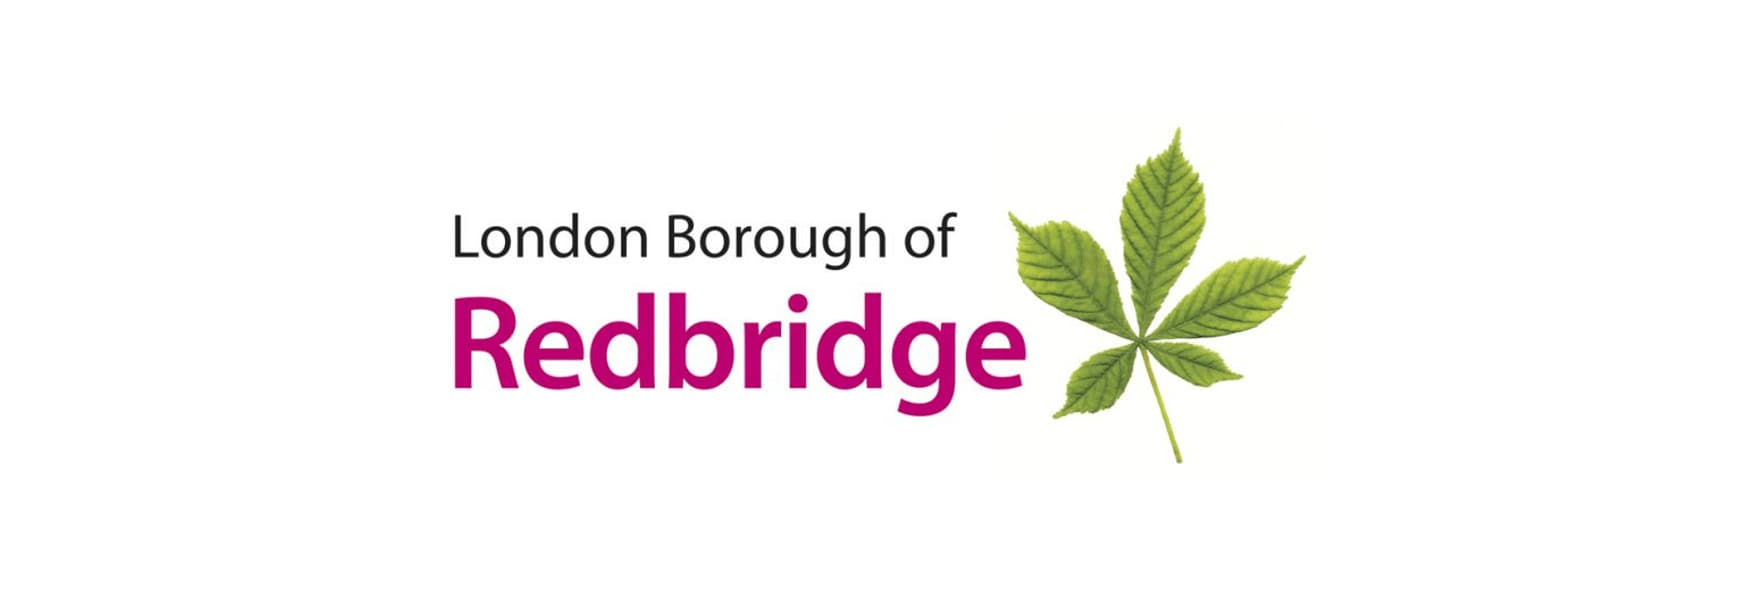 Redbridge Council